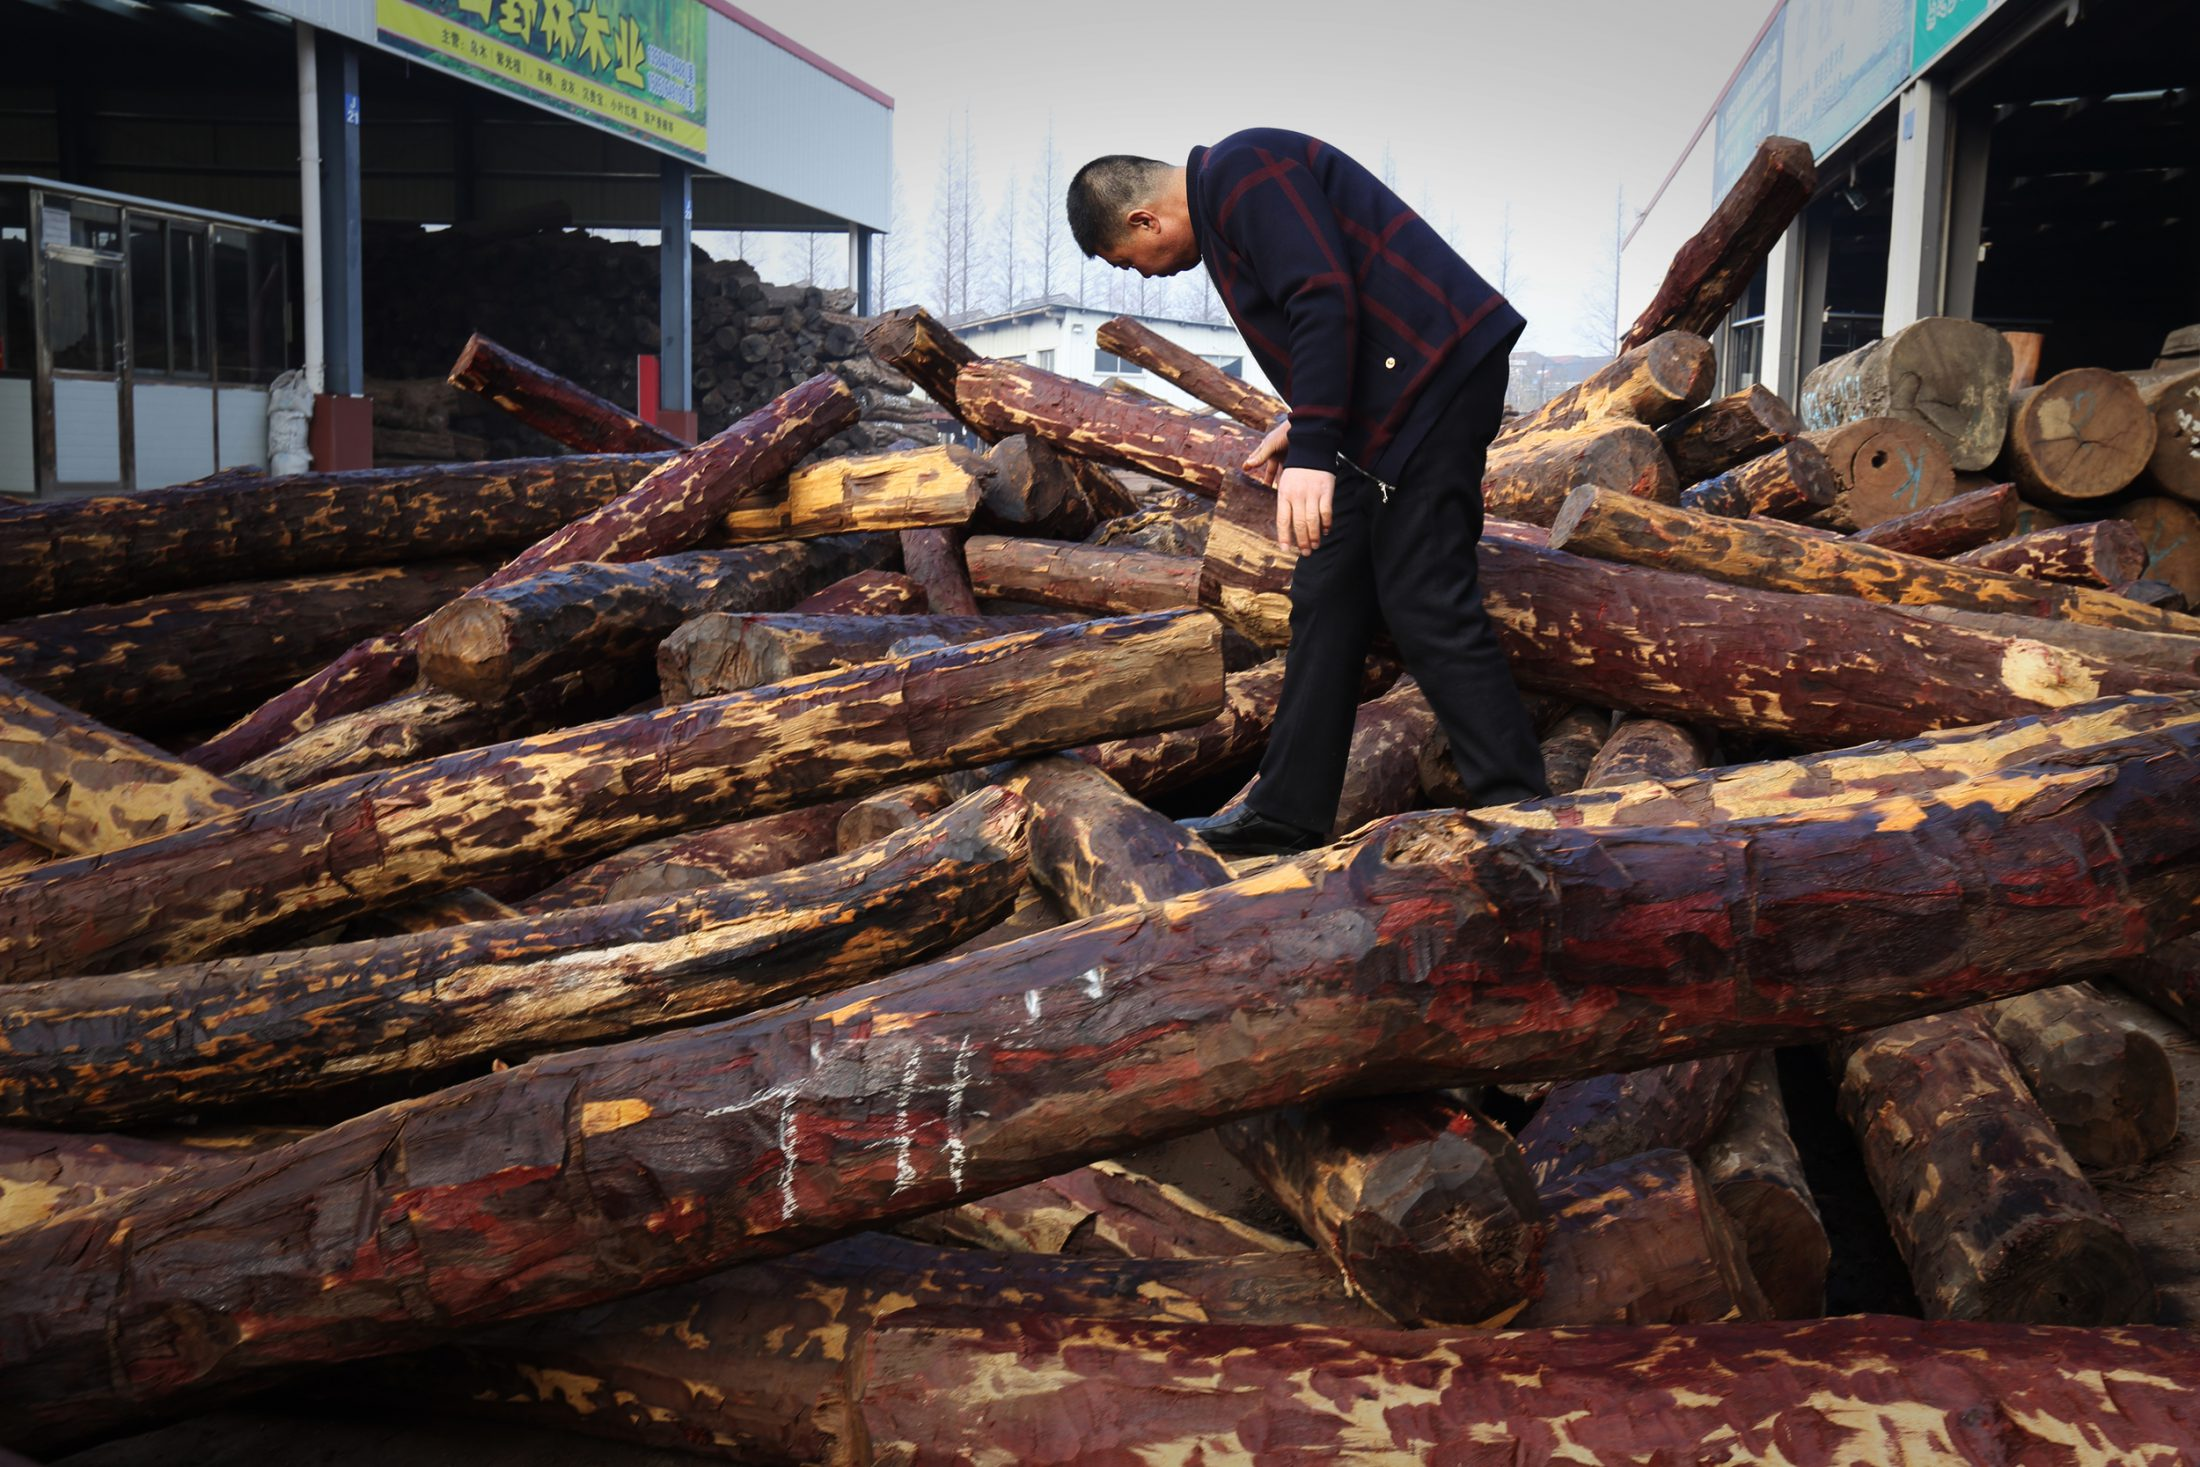 Photo: A supervisor at Hebei Dacheng Rosewood Furniture Factory in Zhangjiagang, a coastal Chinese city, inspects a container of recently arrived rosewood [Photo credit QZ.com].